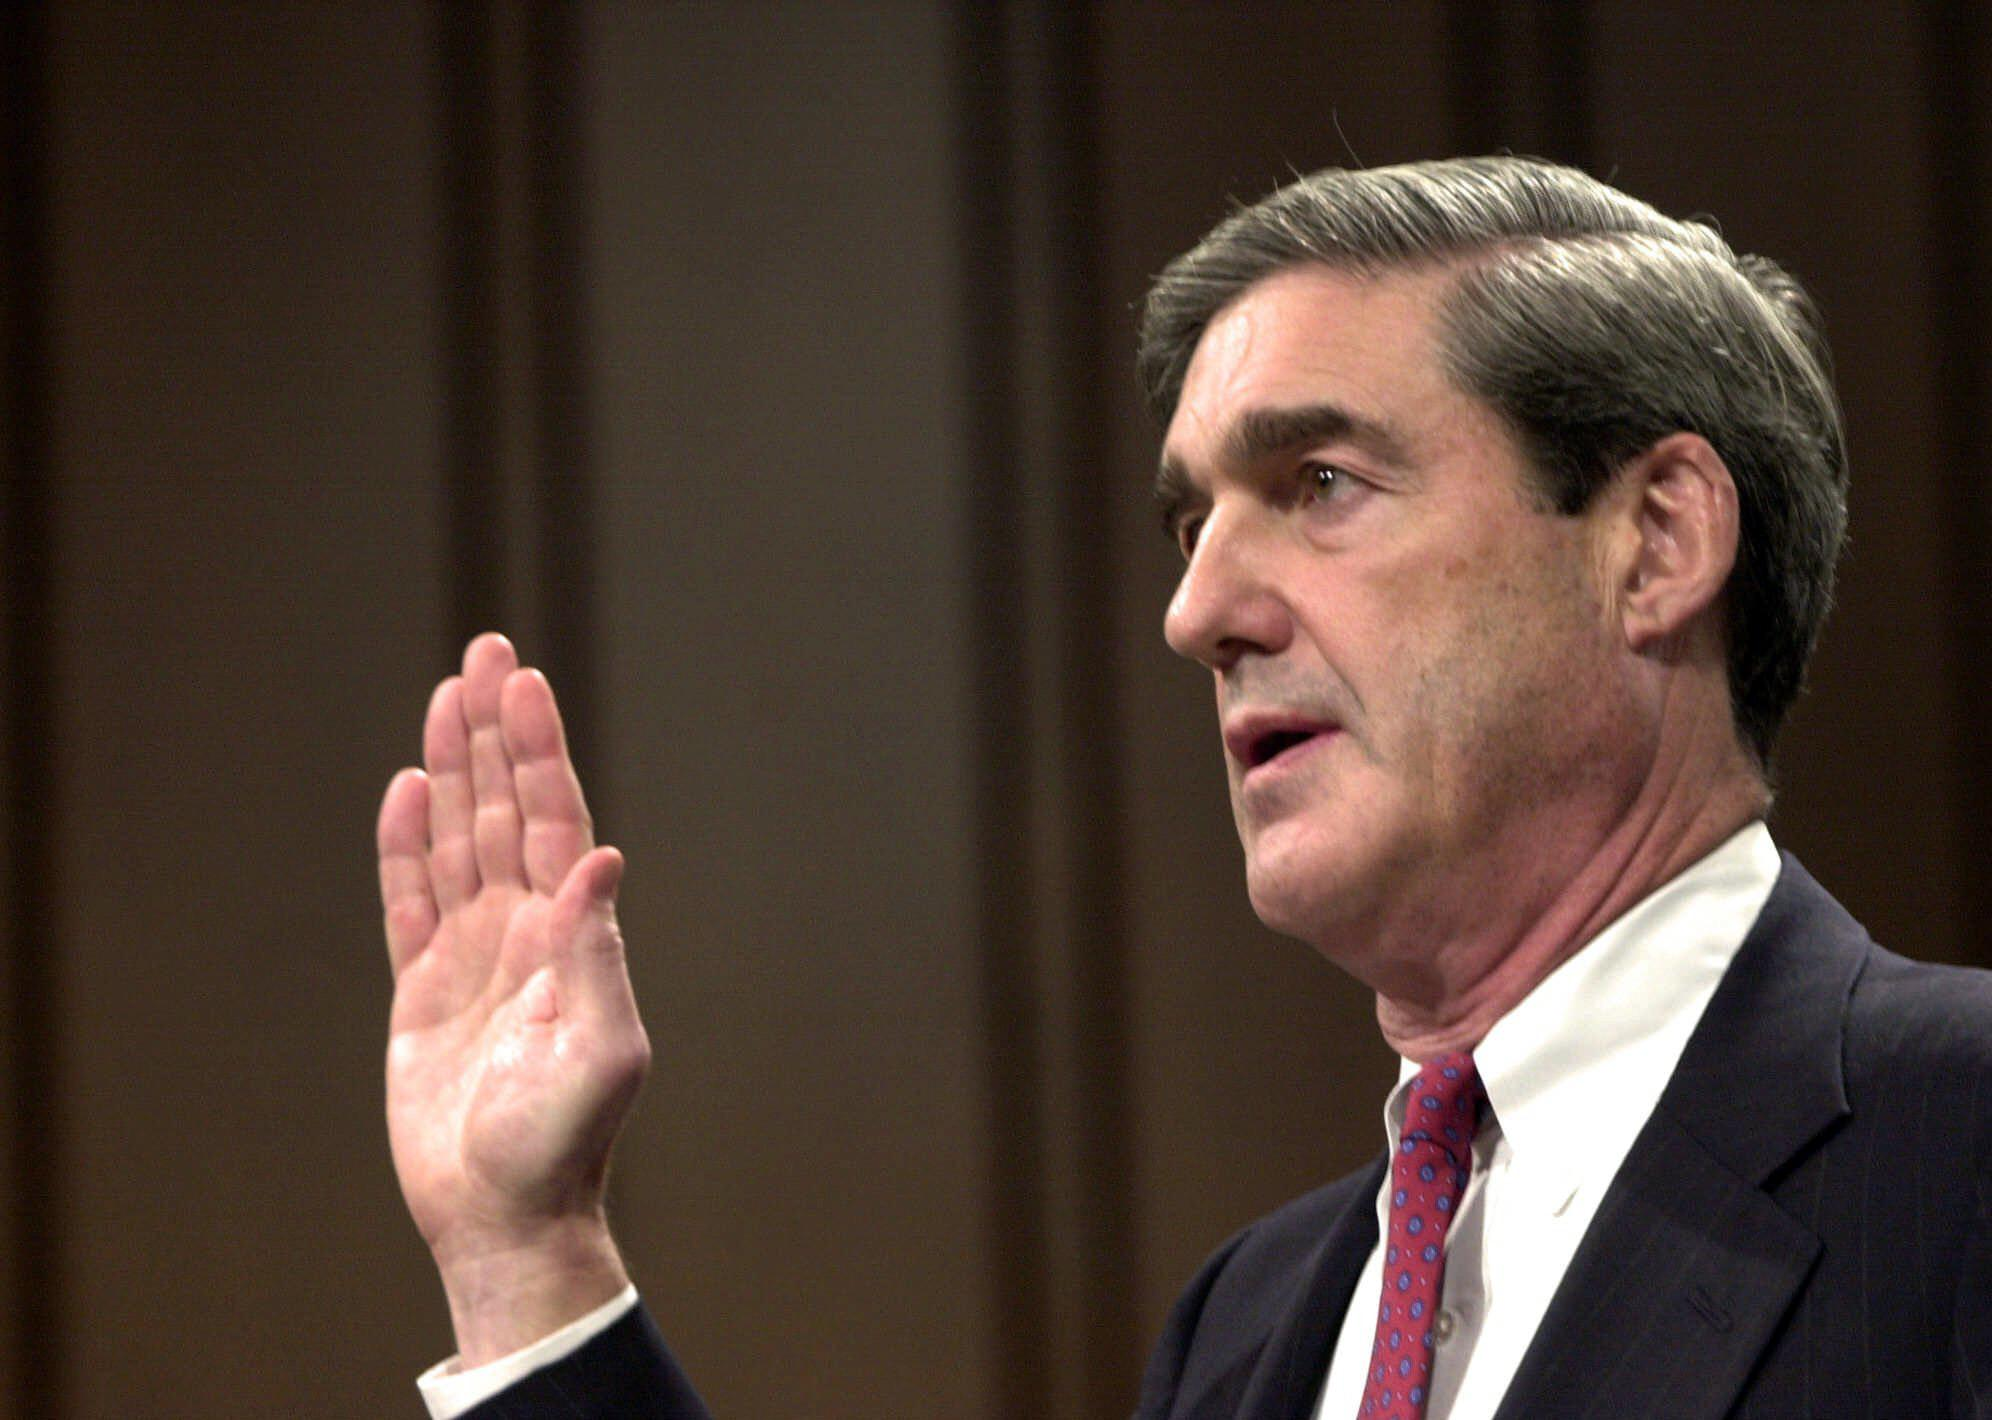 FILE - In this July 30, 2001, file photo, Robert Mueller is sworn in at the start of his testimony during his confirmation hearing before the Senate Judiciary Committee on Capitol Hill in Washington, to be the FBI director.{&amp;nbsp;} (AP Photo/Dennis Cook, File)<p></p>